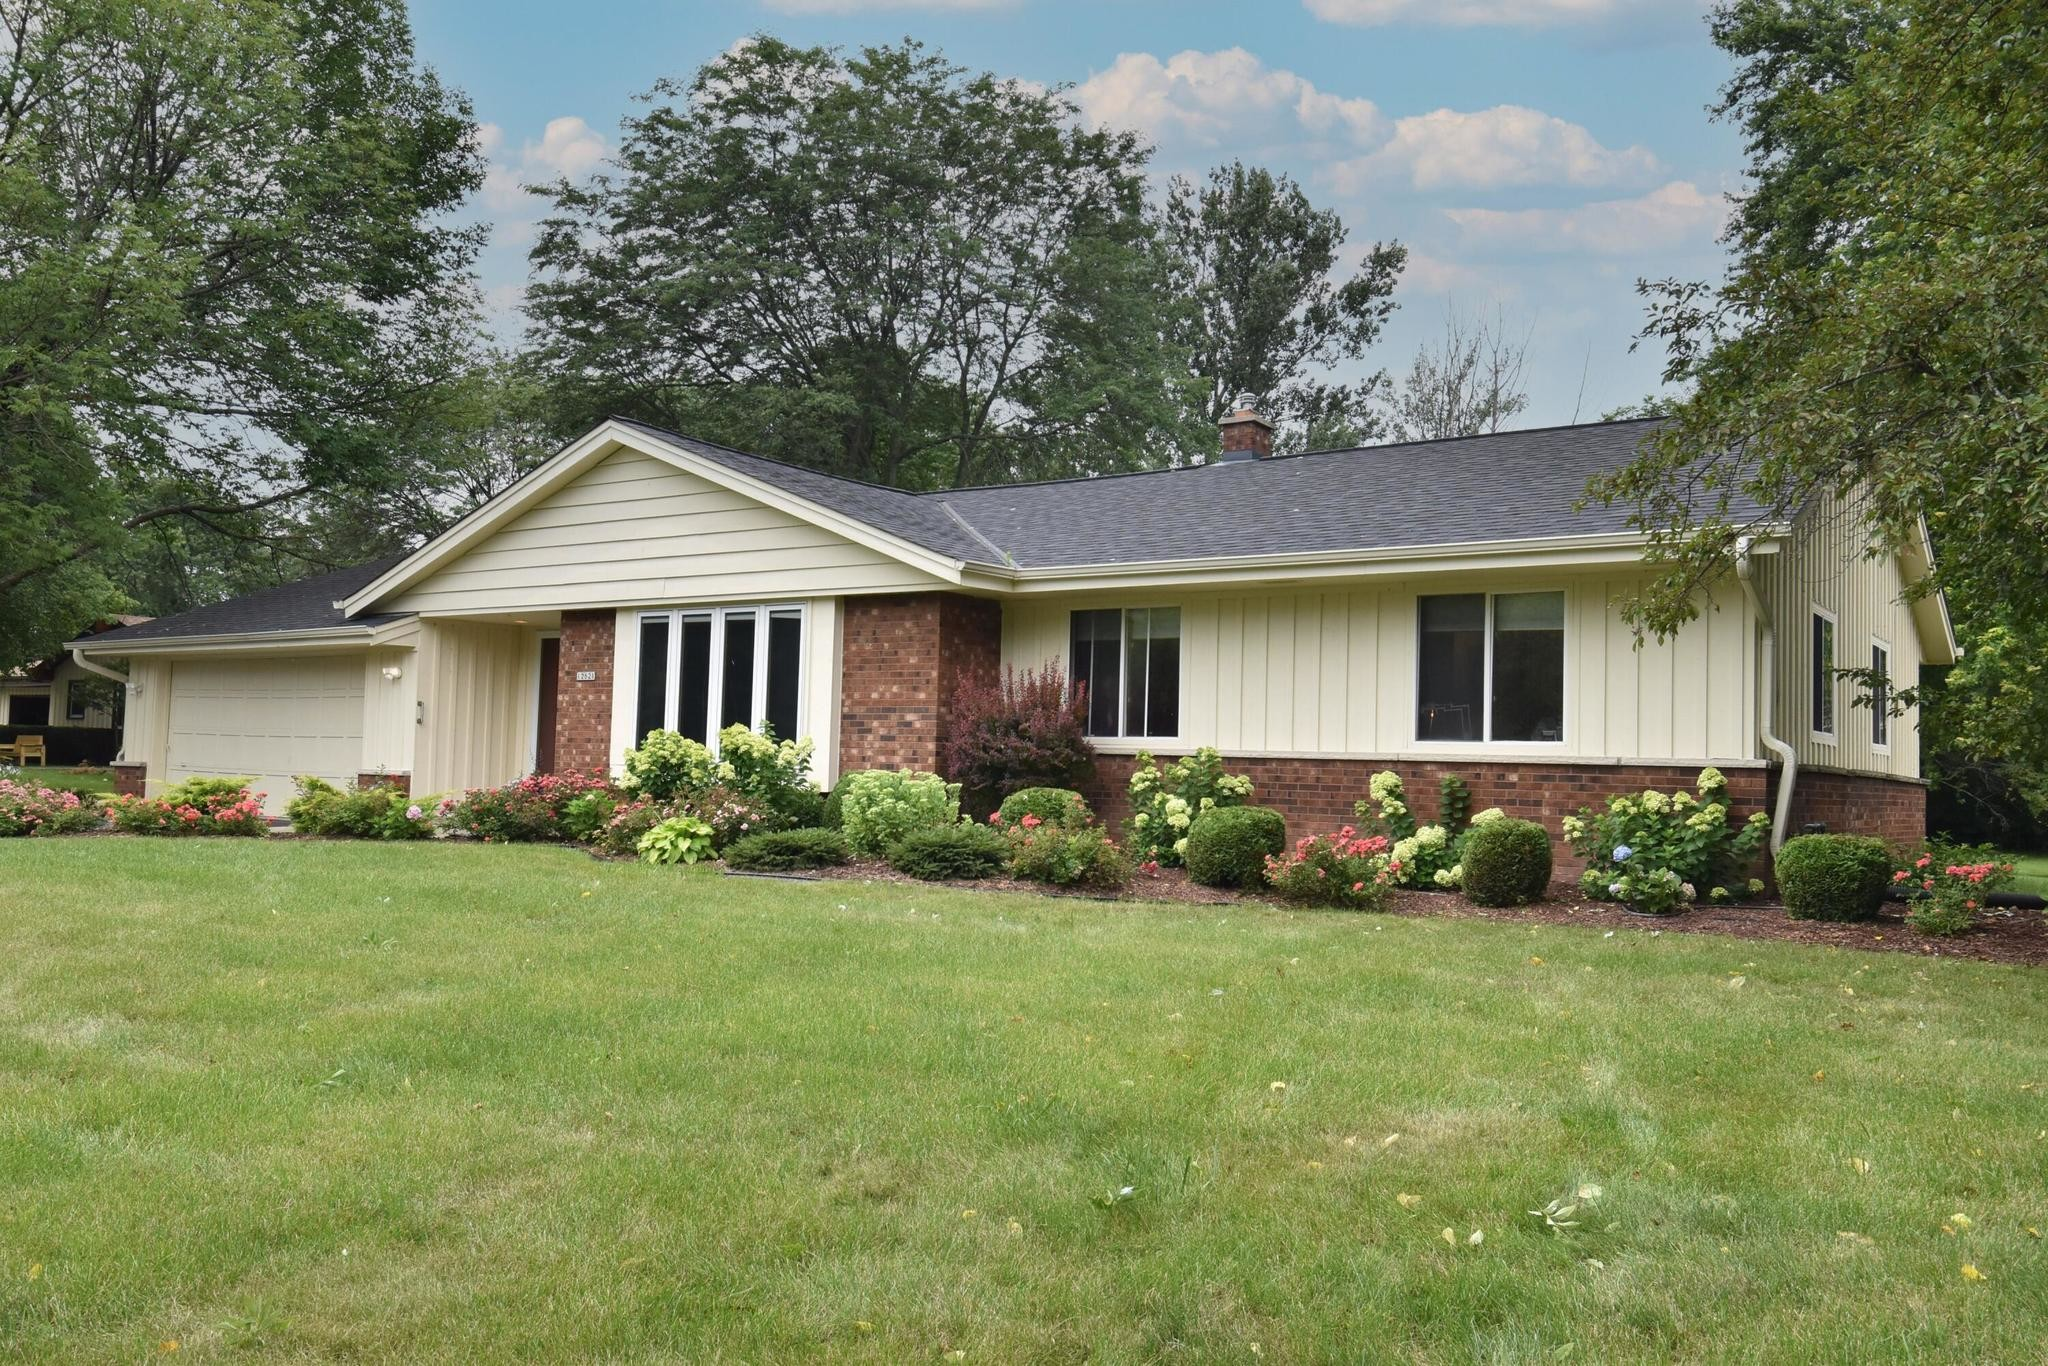 3-Bedroom House In River Forest Park